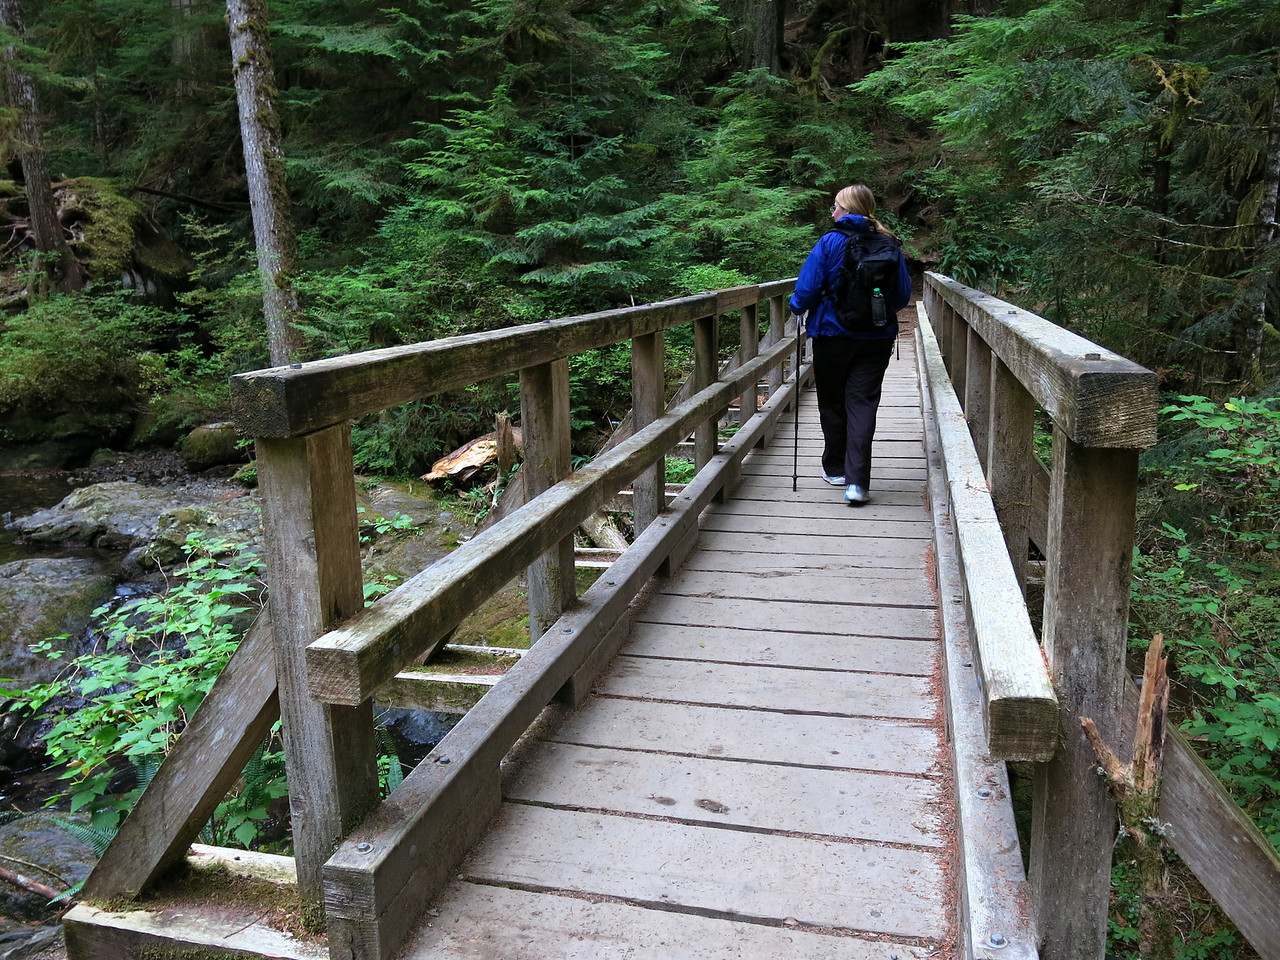 After one half mile, the trail crosses Twenty-two Creek.   The creek runs north from the lake to the South Fork of the Stillaguamish River, which runs west towards Puget Sound, west of Arlington.